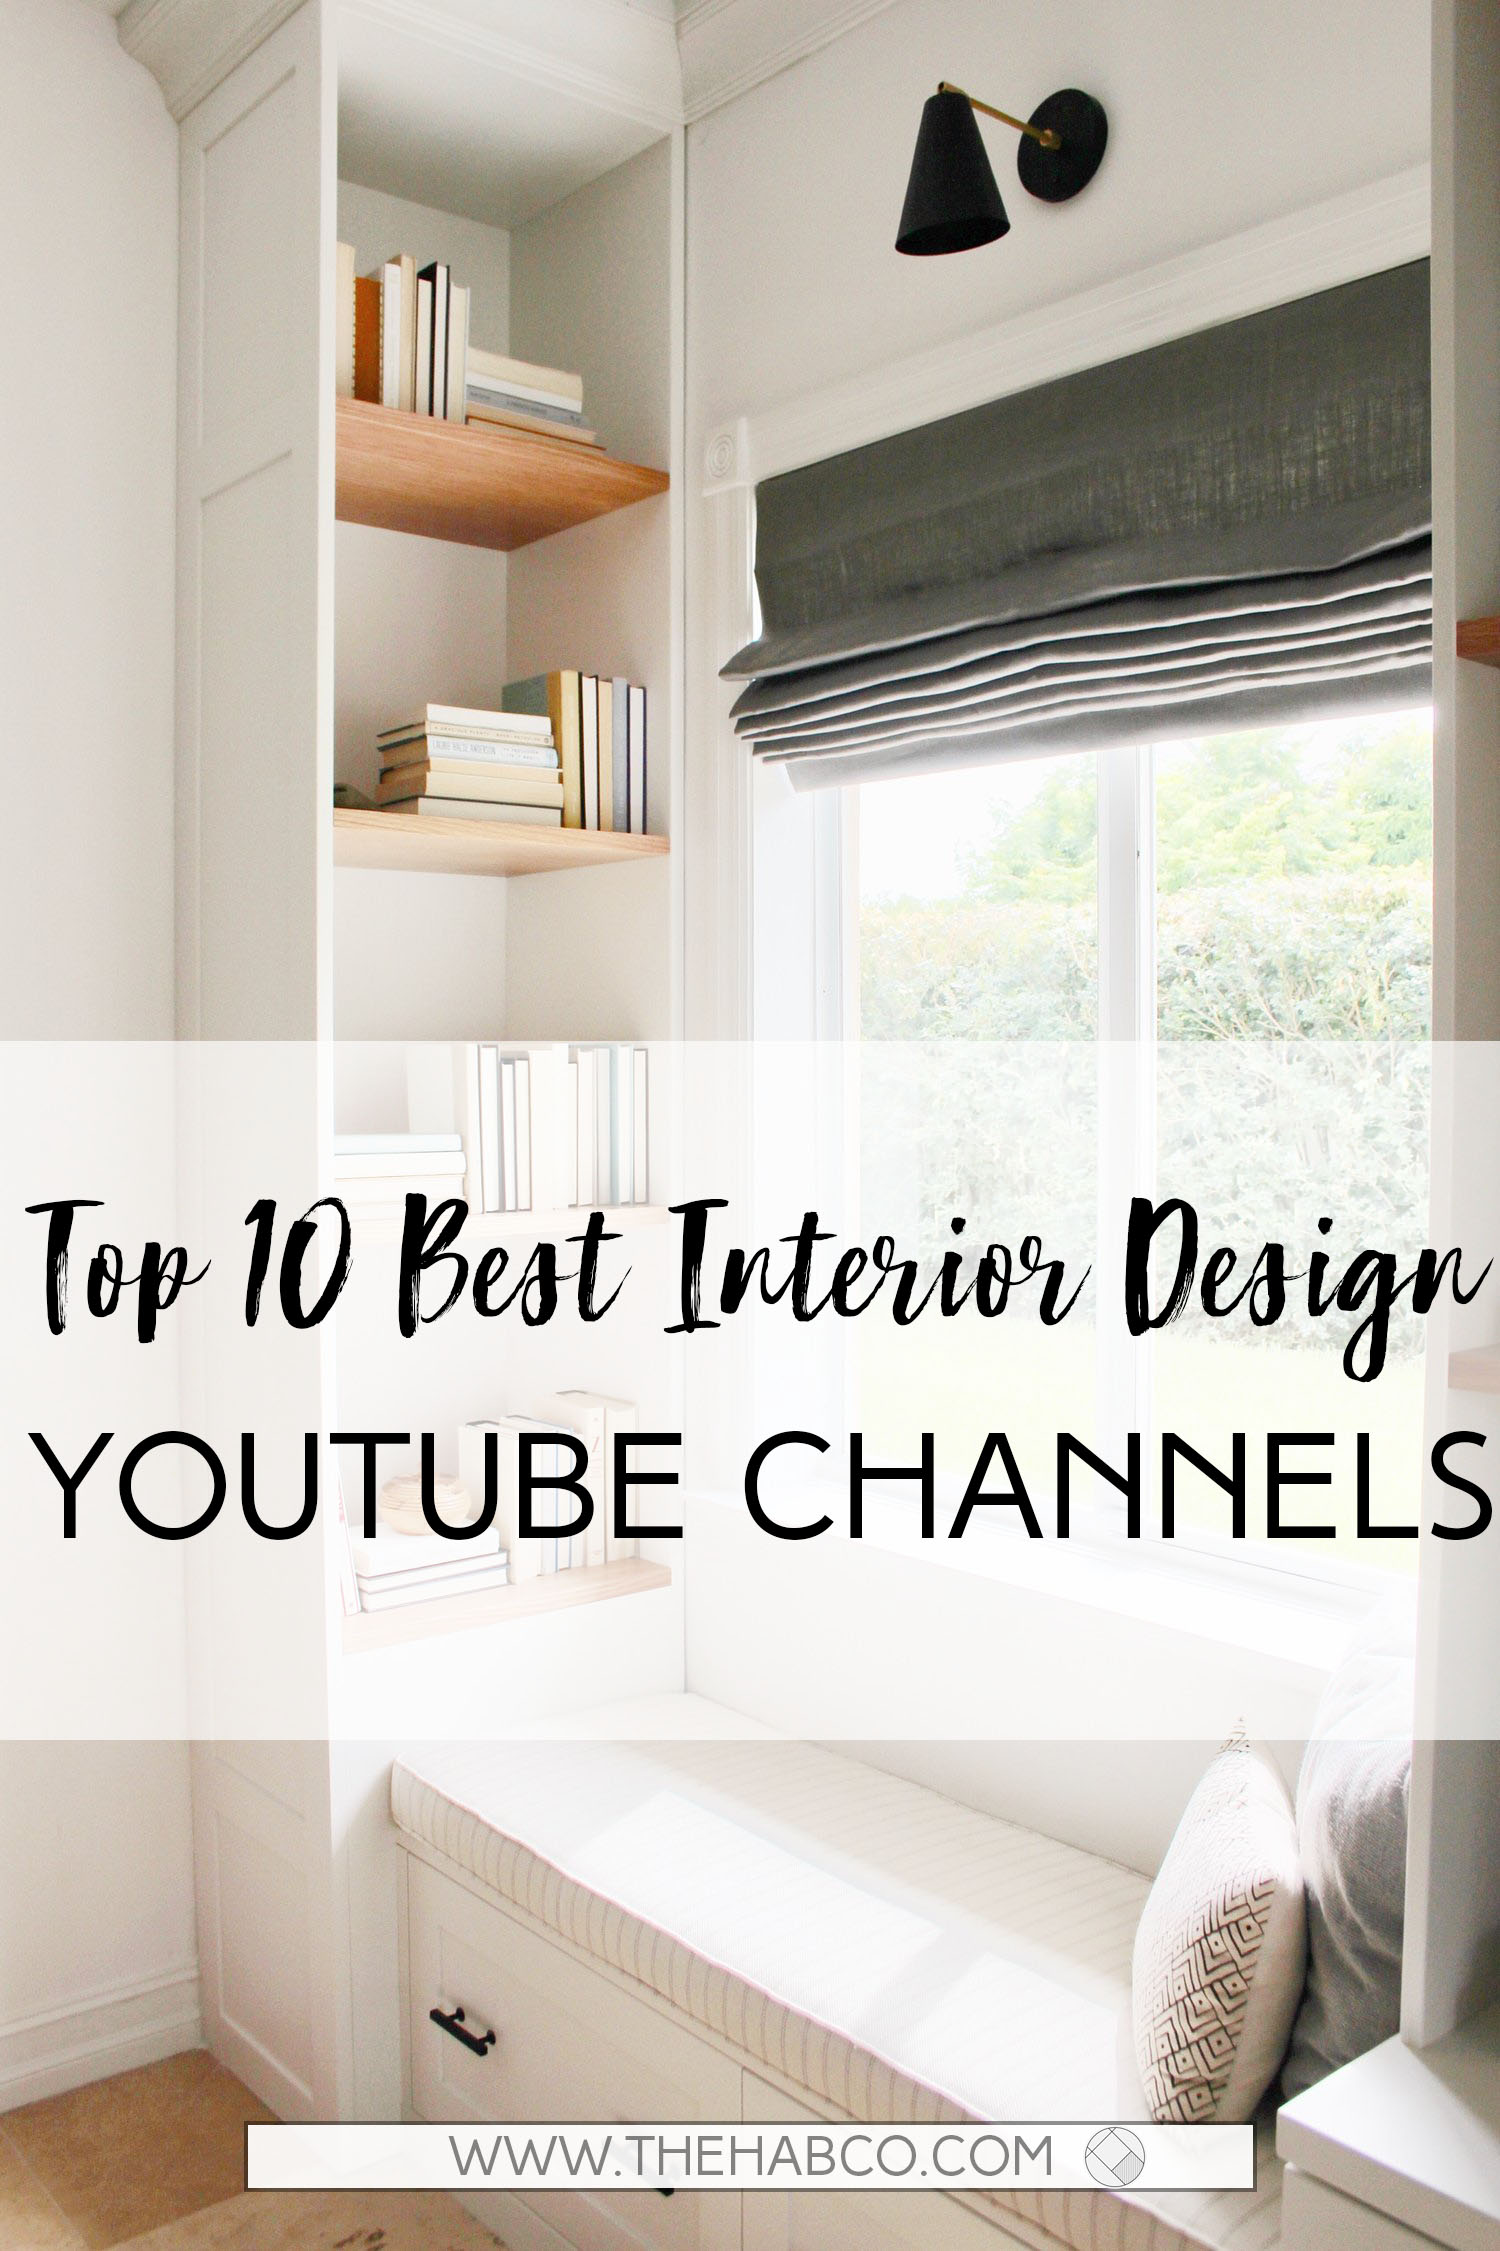 Interieur Blog Diy Top 10 Best Interior Design Youtube Channels The Habitat